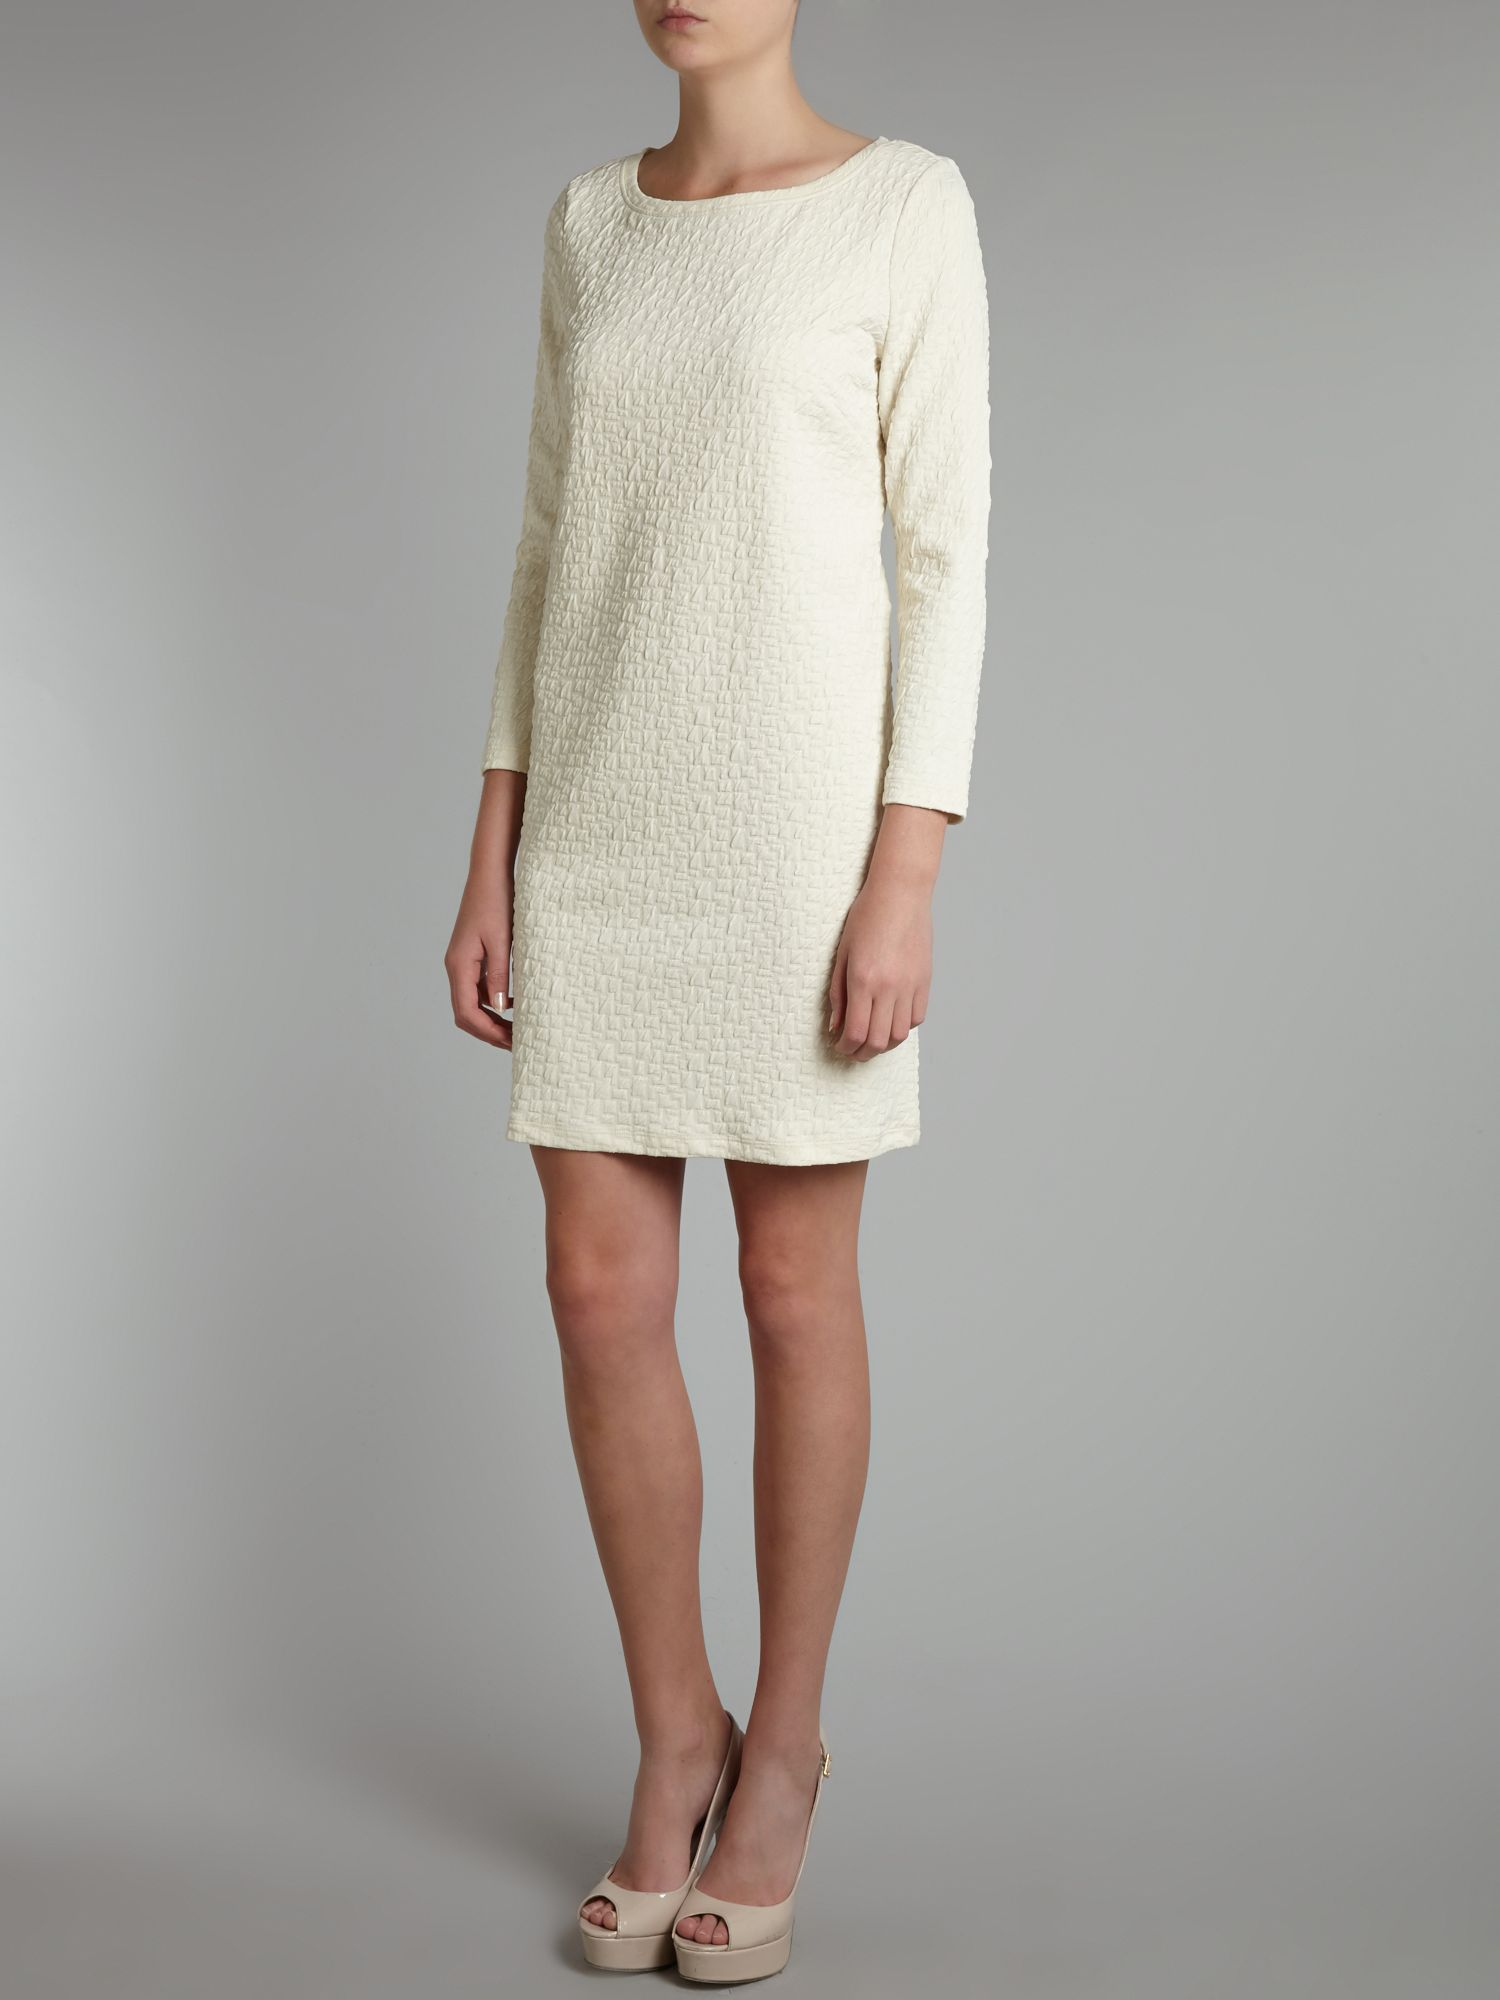 Edel 3/4 sleeve shift dress